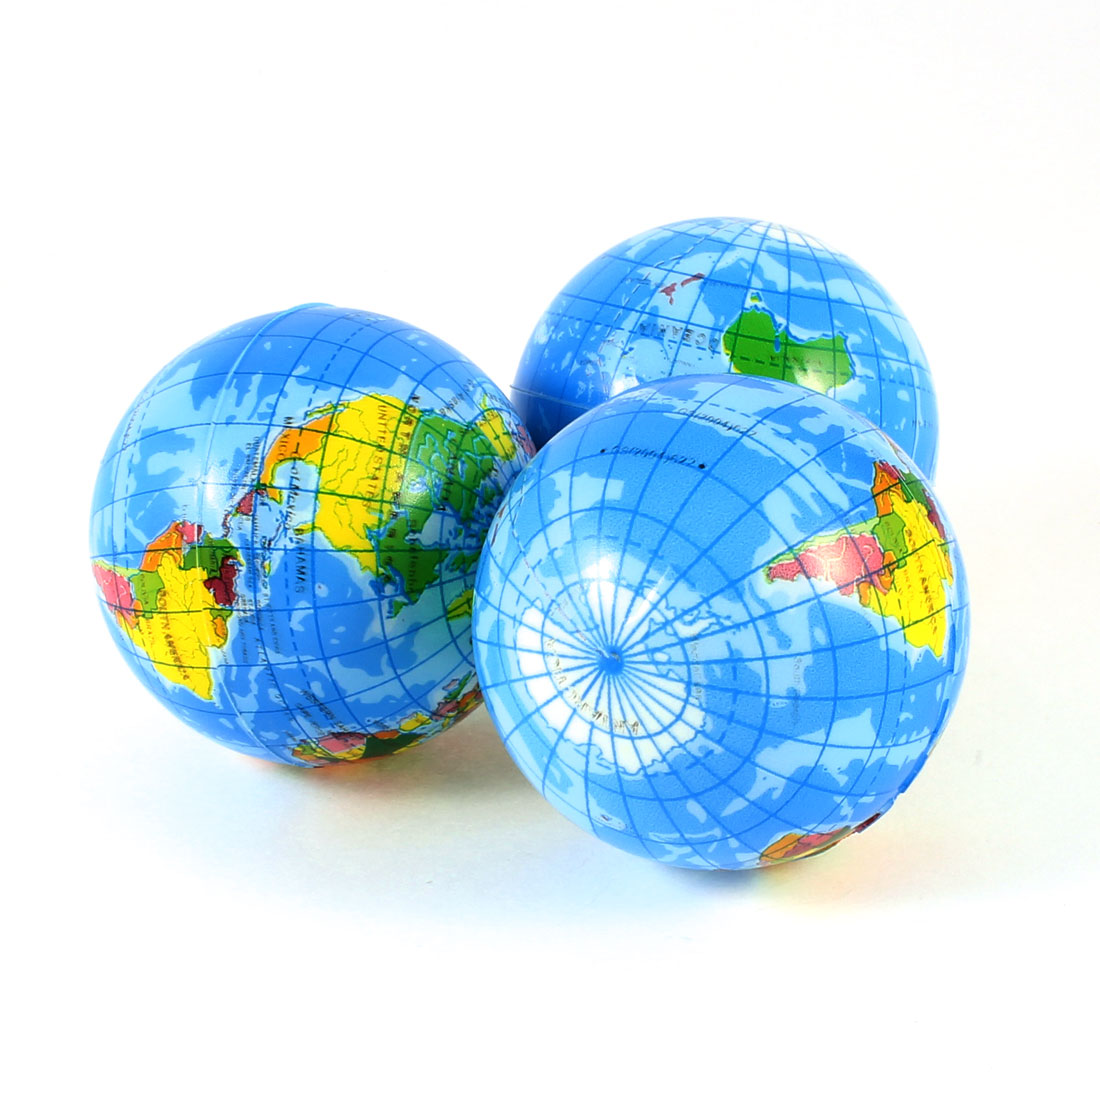 3 Pcs Blue Red Green Sponge Globe Toy for Cognitive Earth